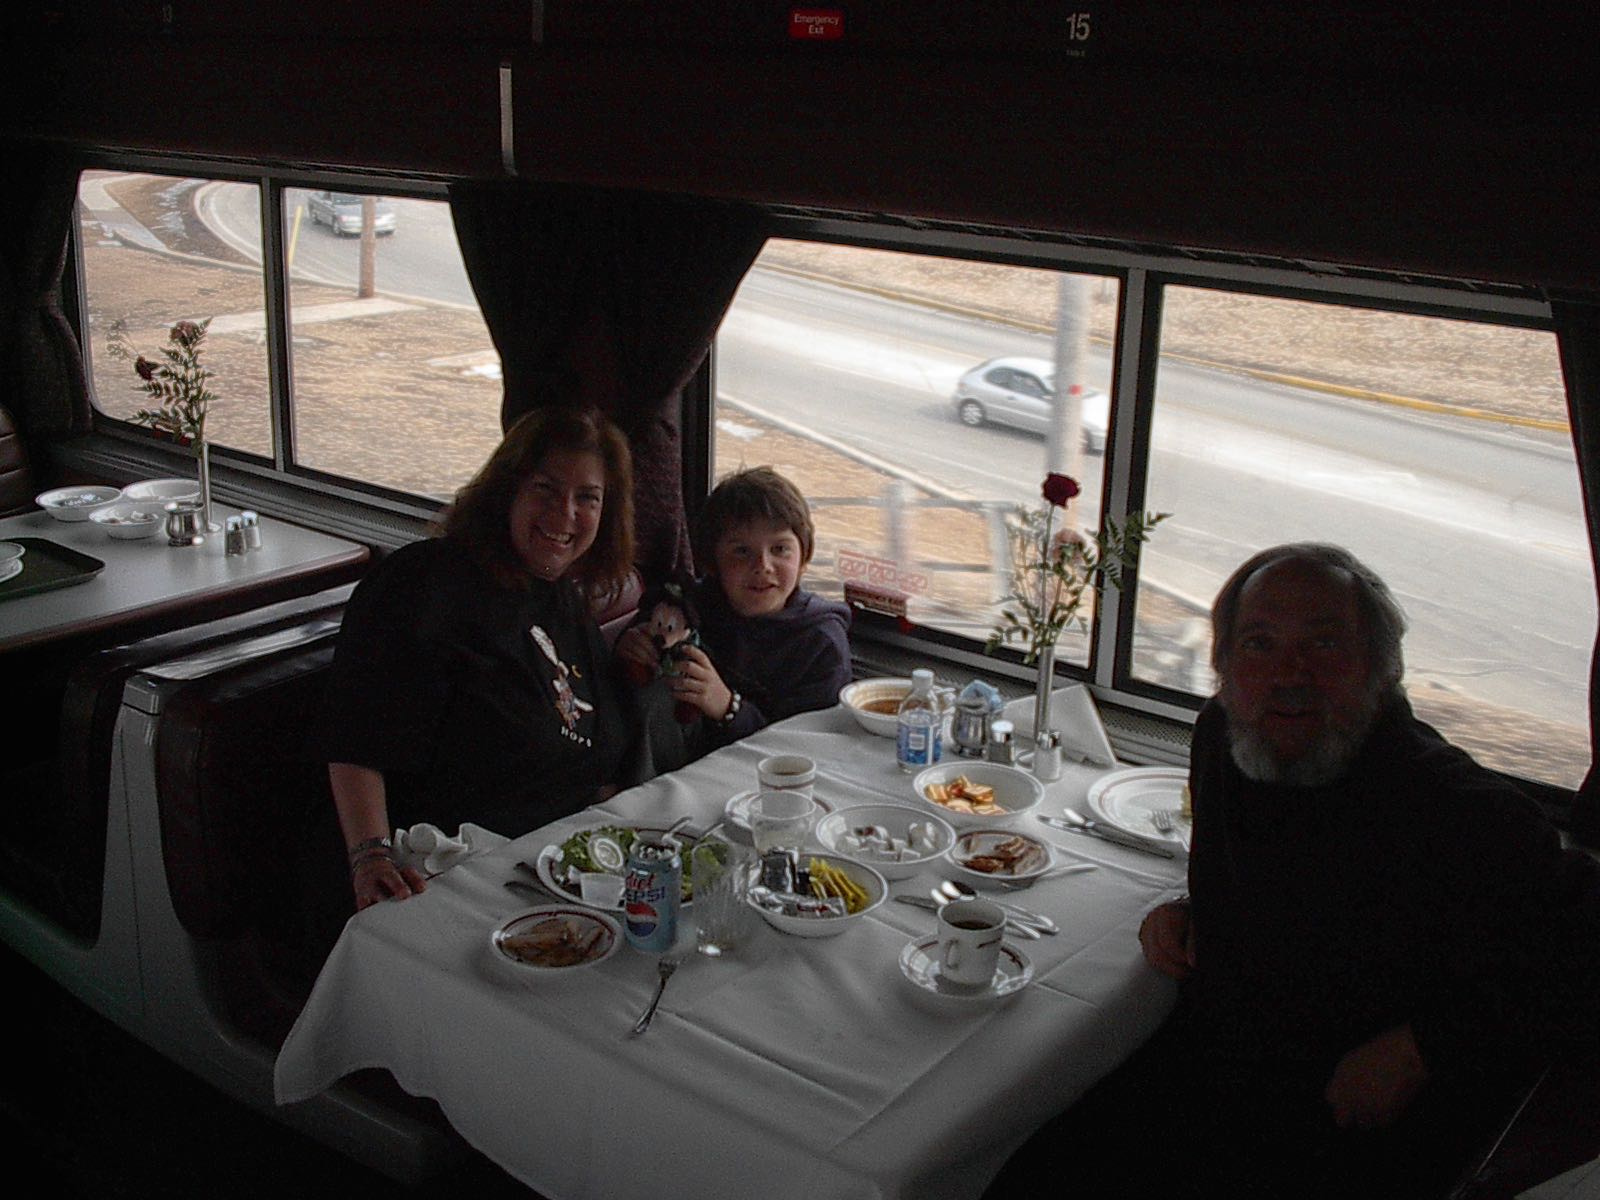 Dennis, Abby, Justin In Dining Car Of Southwest Chief Train